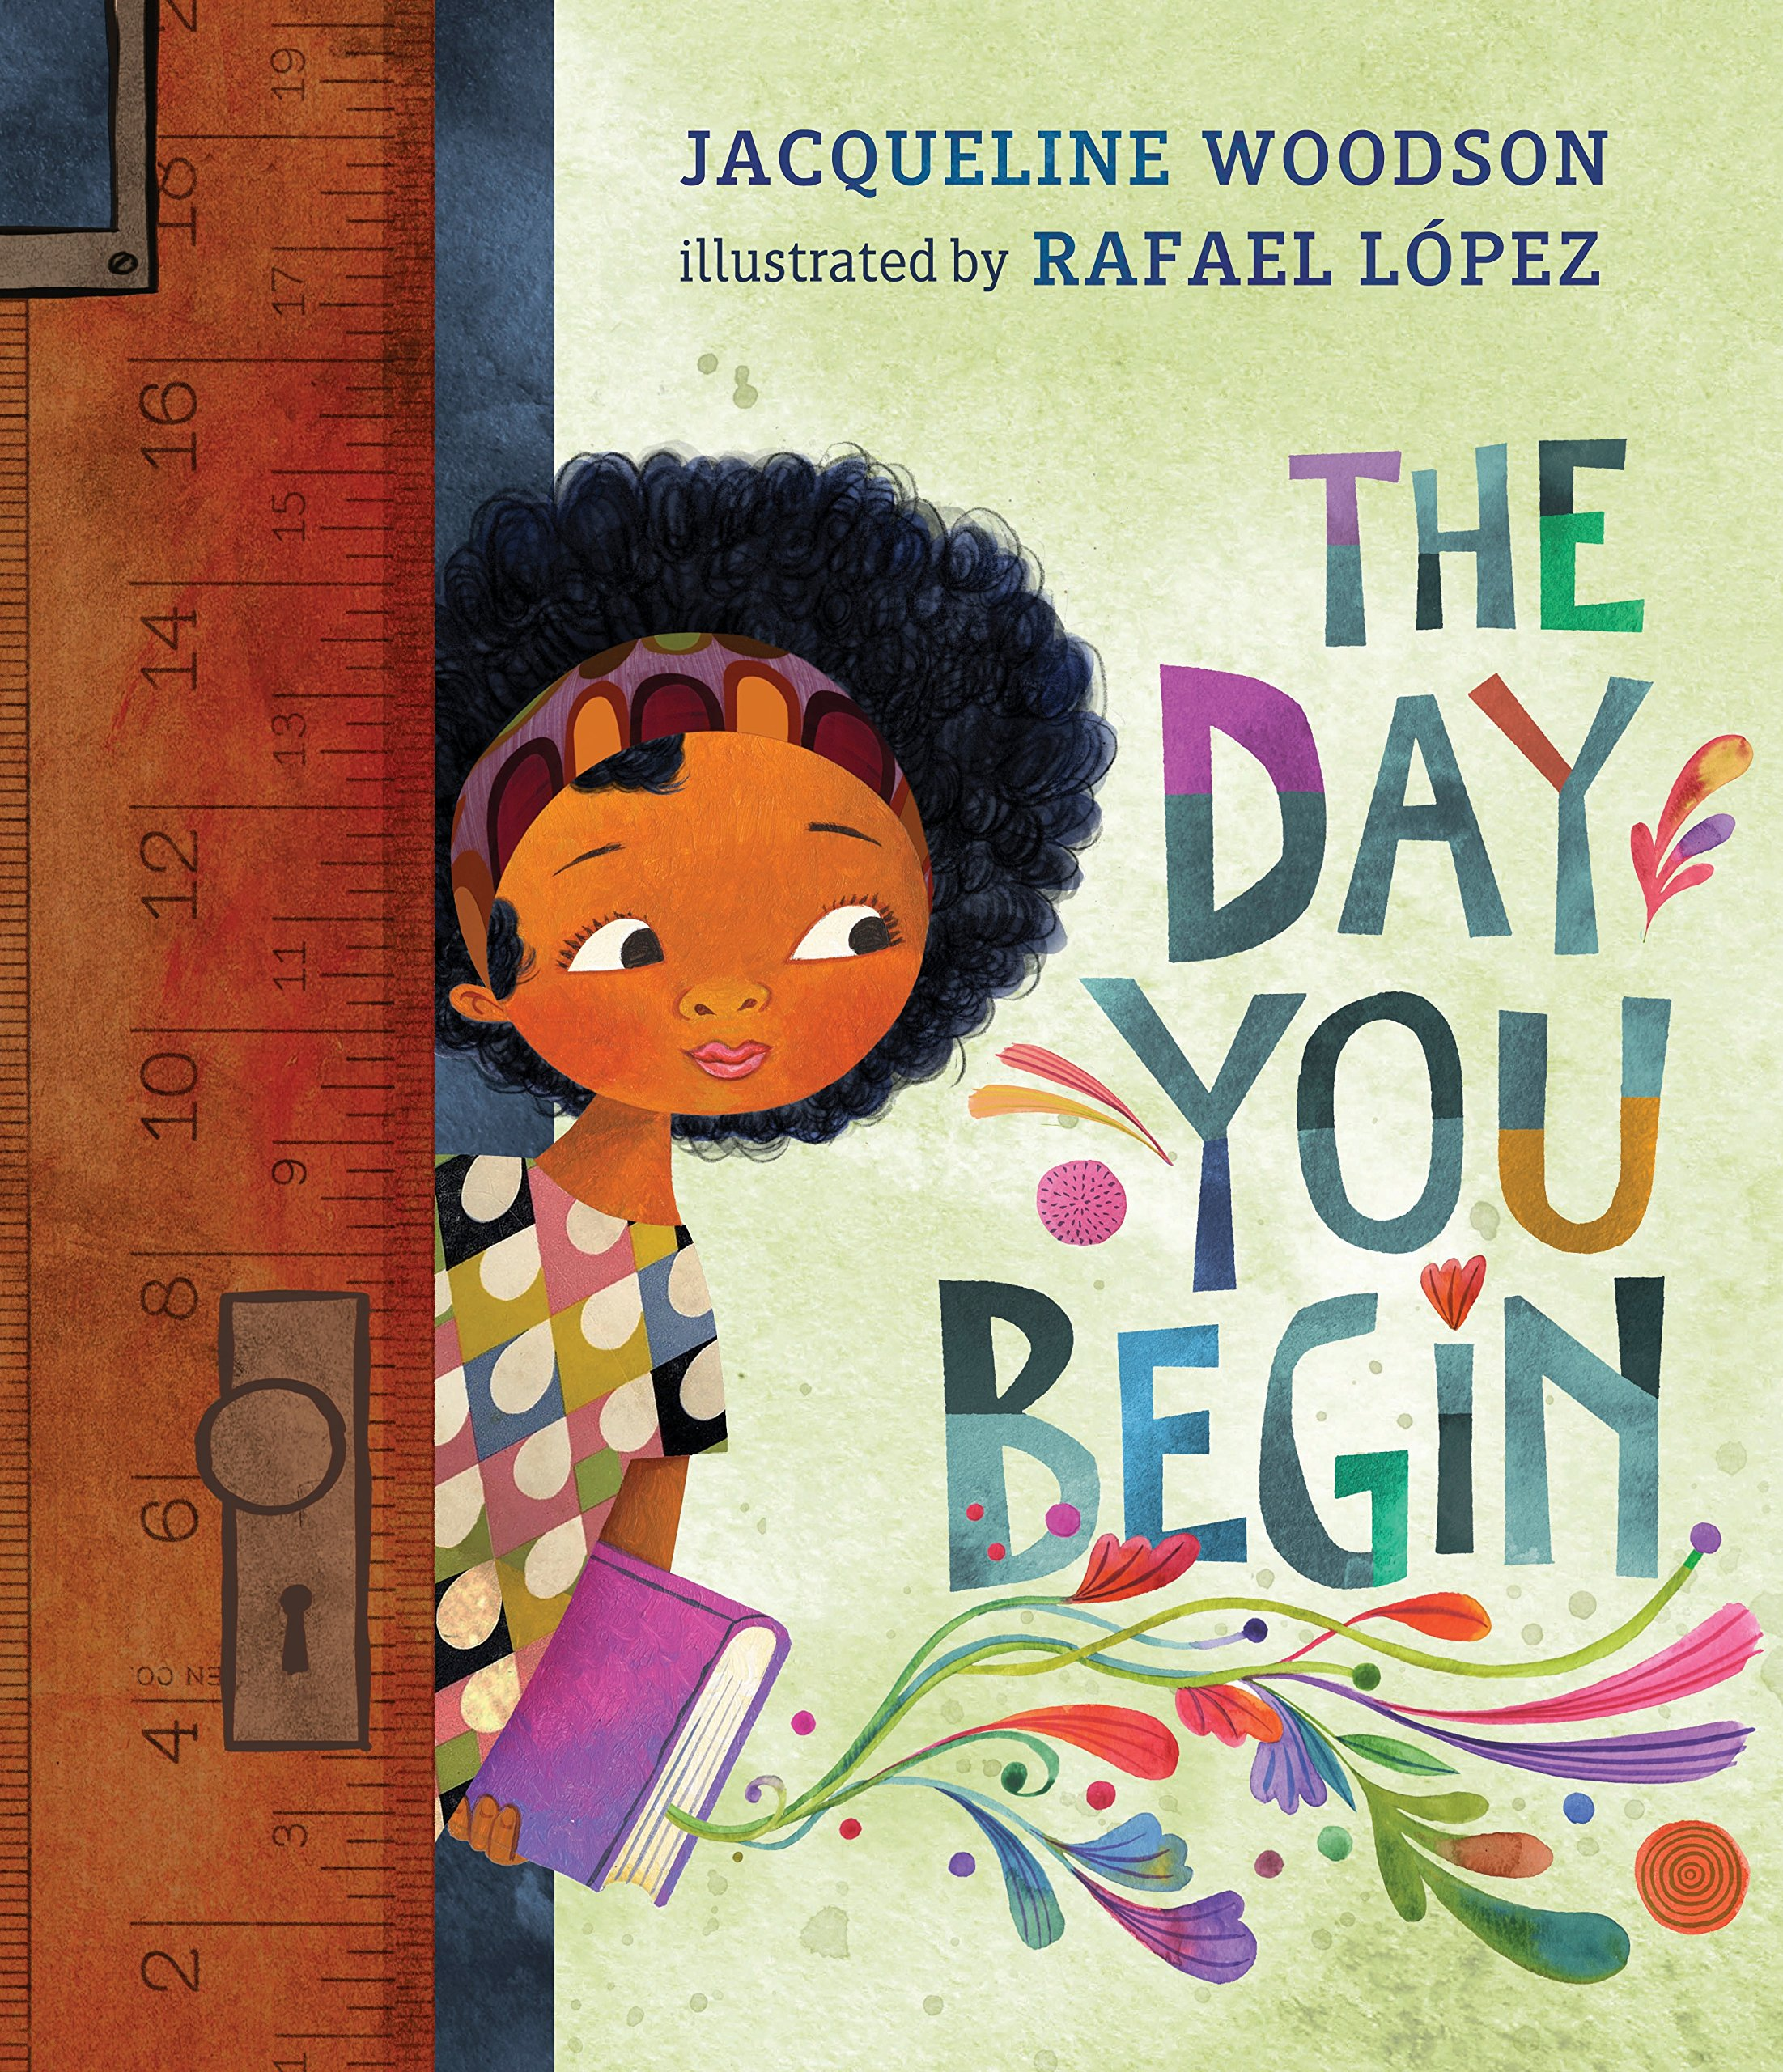 a young black girl with curly hair wearing a colorful shirt and holding a purple book opens a door. Next to her, in colorful lettering, is the book title: The day you begin